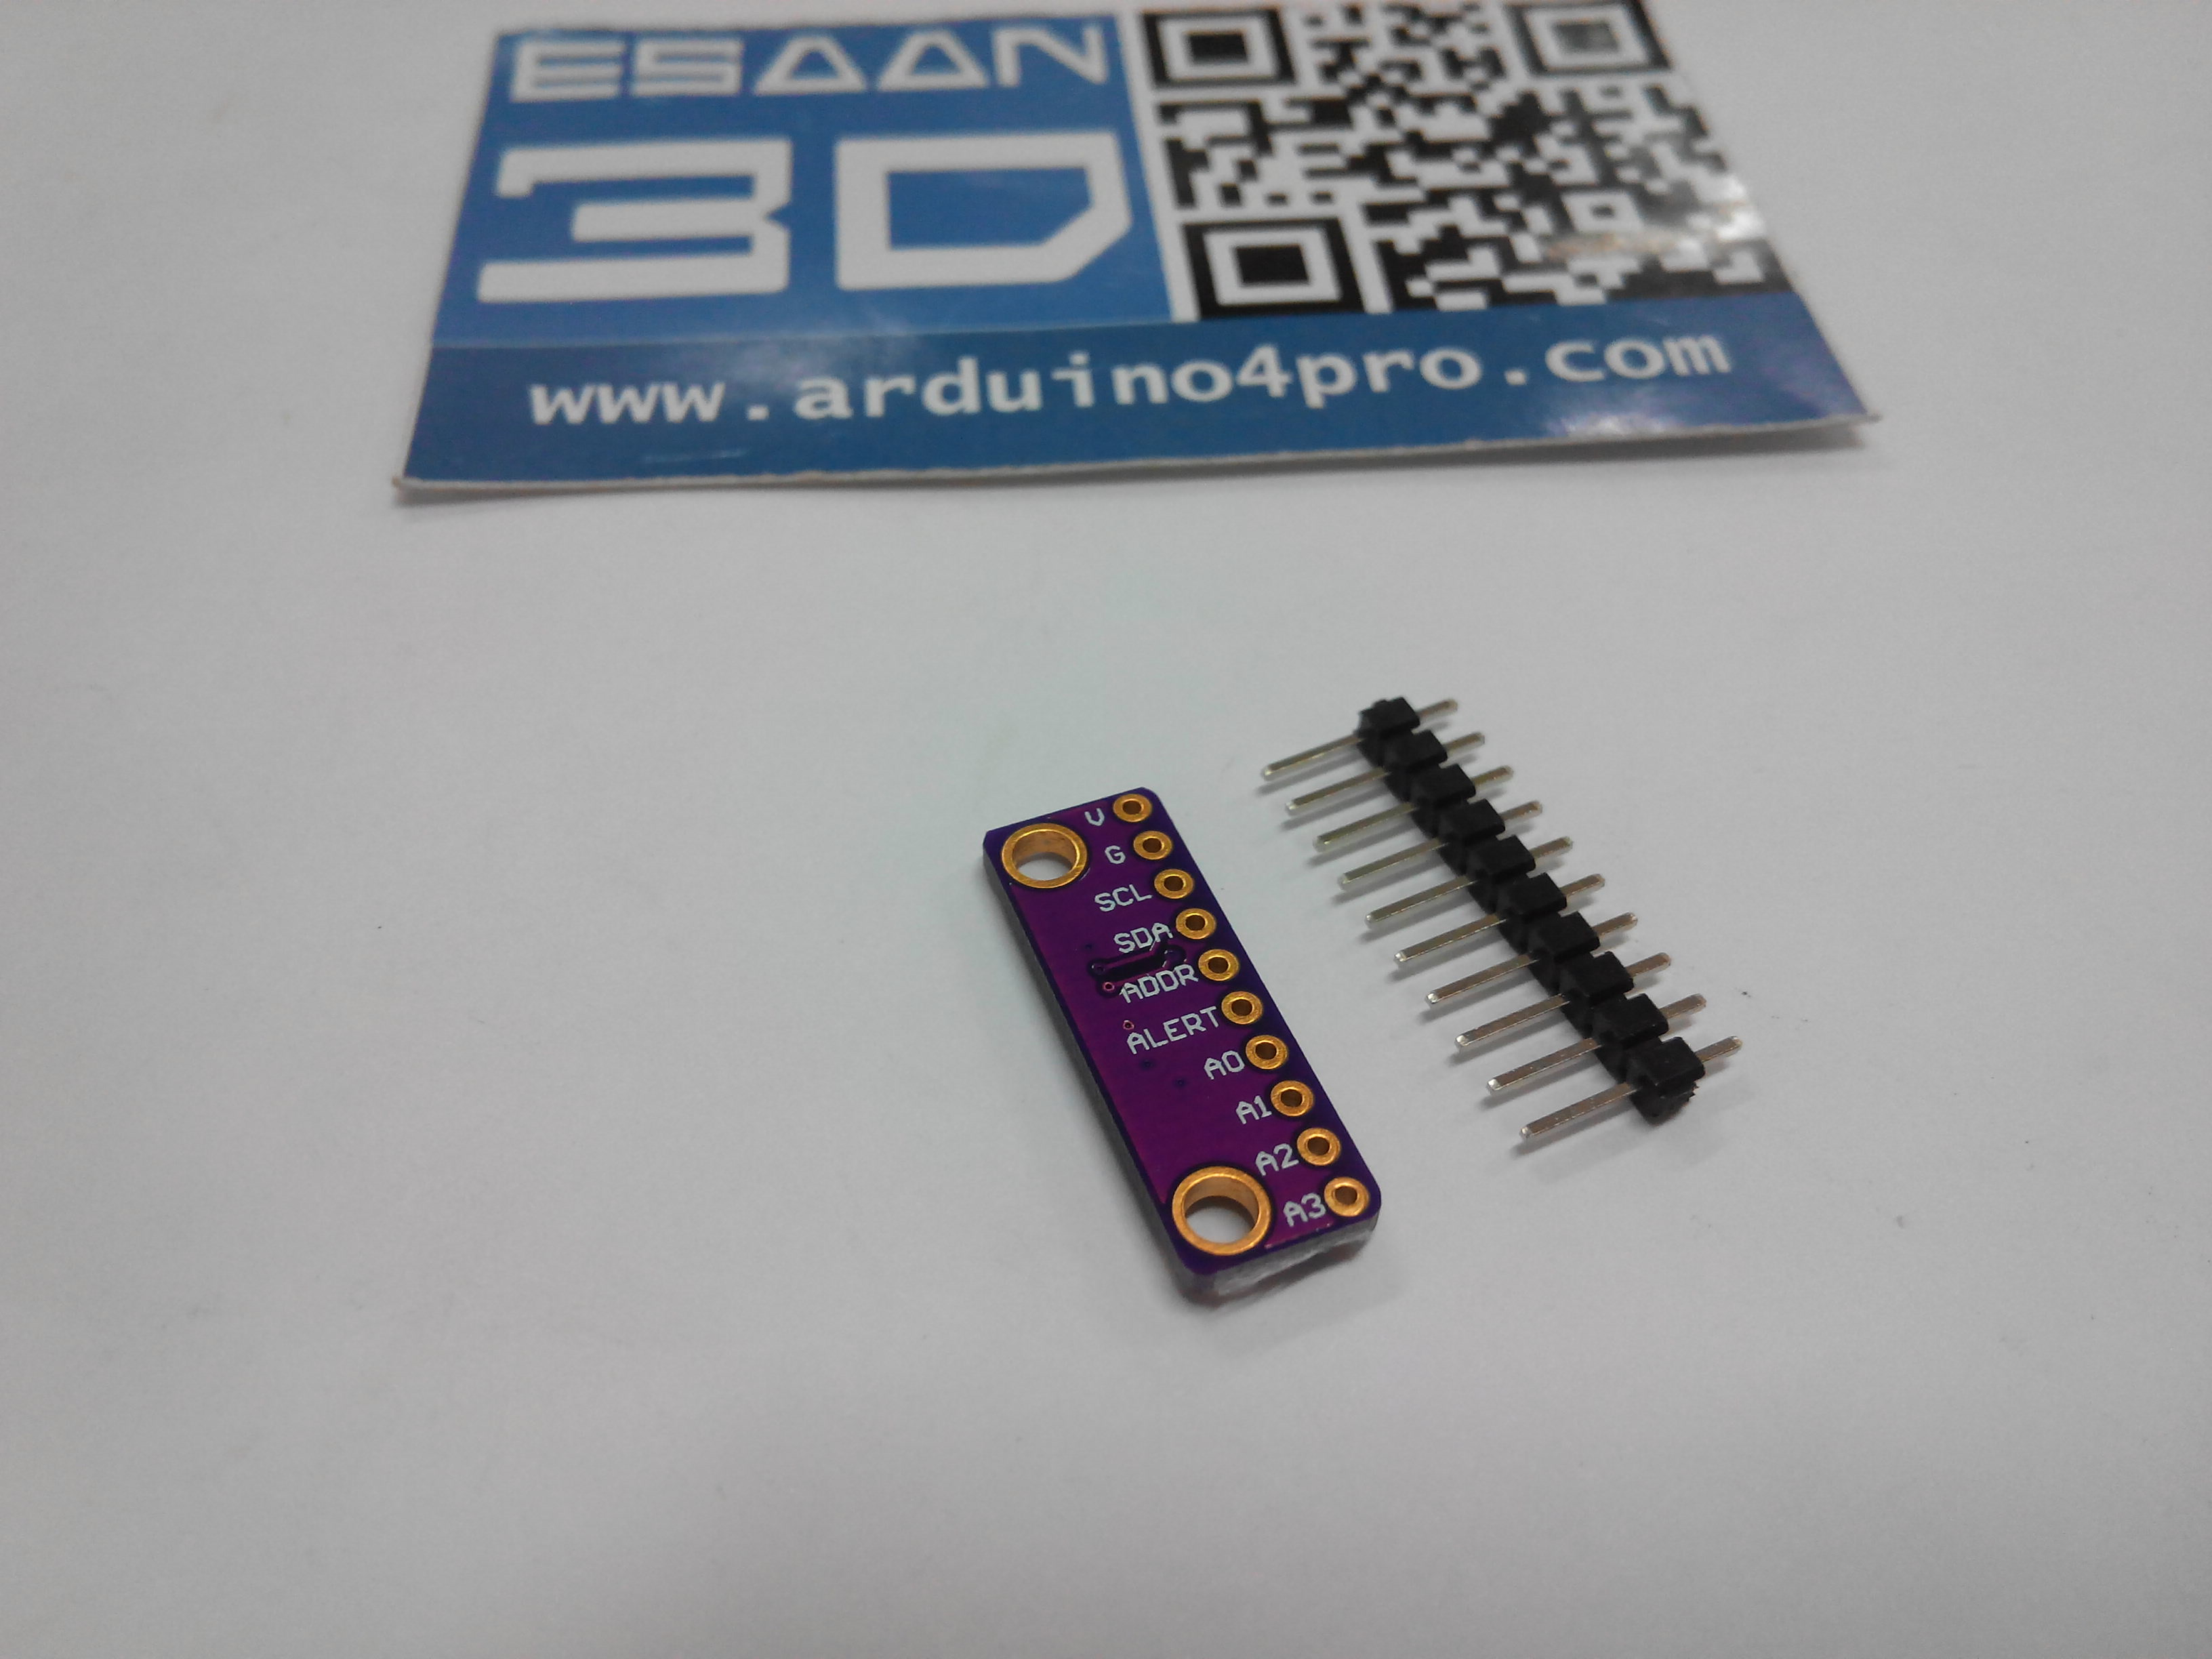 16 Bit ADC 4 channel Module I2C ADS1115